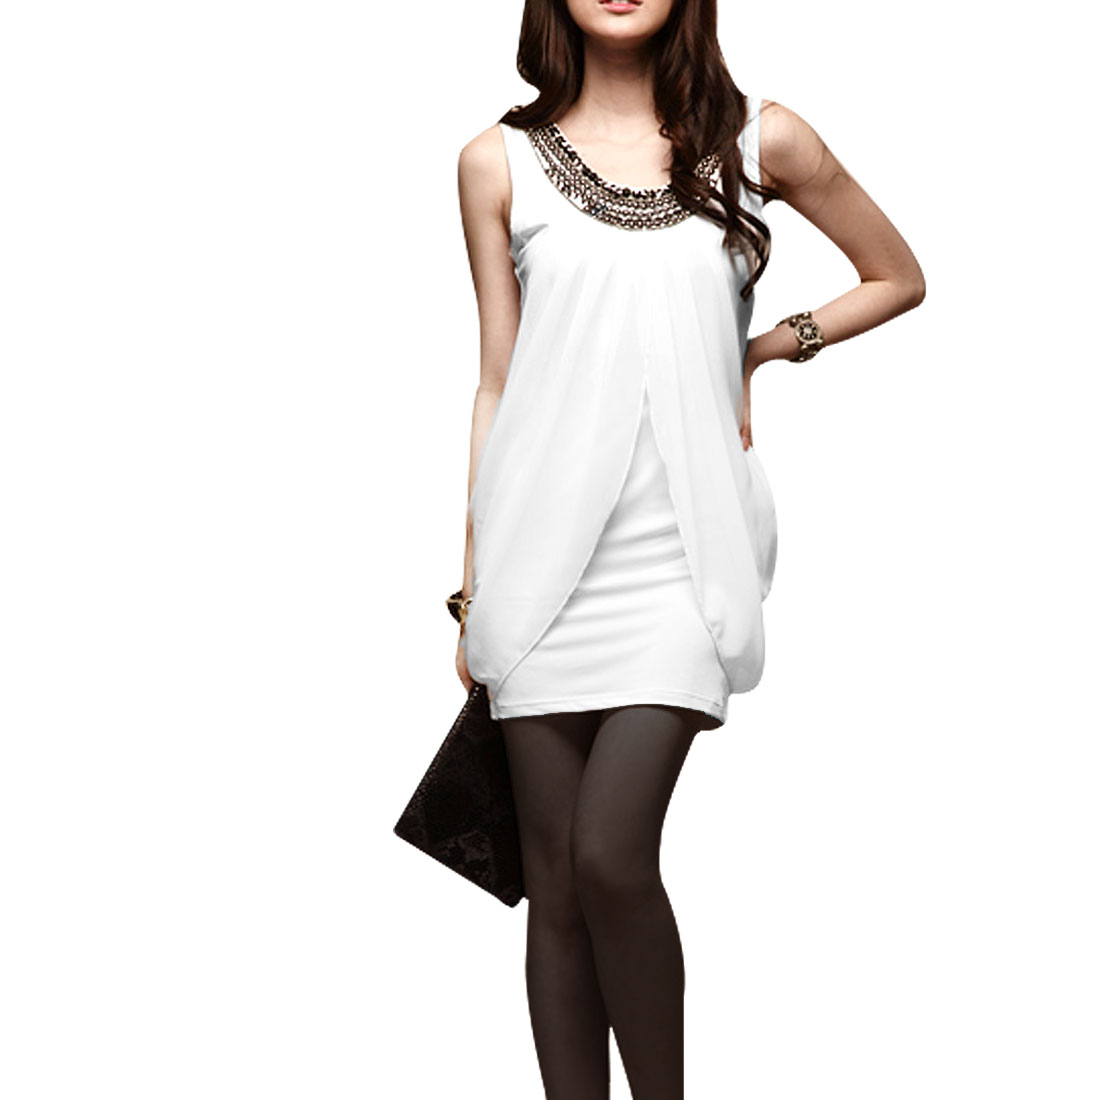 Summer Chiffon Fly Away Solid White Leisure Tunic Shirt XS for Woman